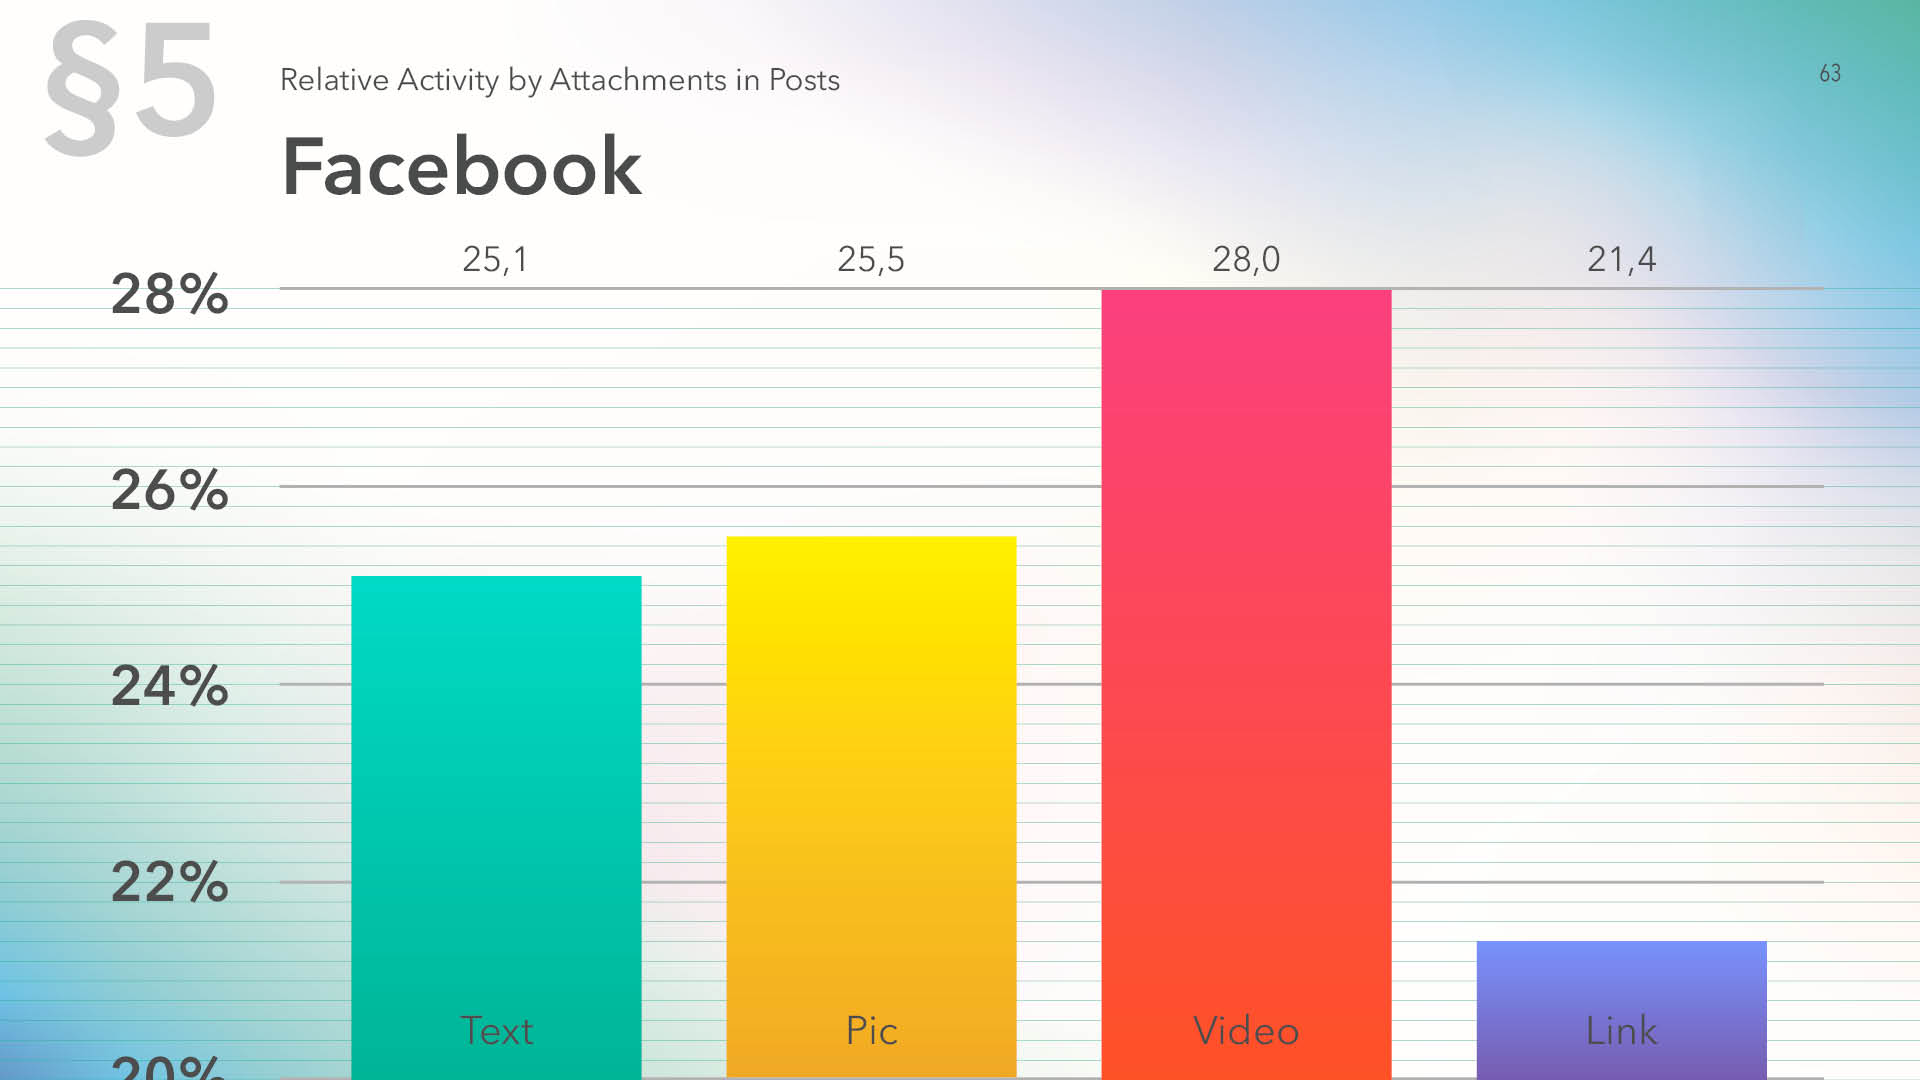 Relative activity on Facebook by attachments in posts, 2019